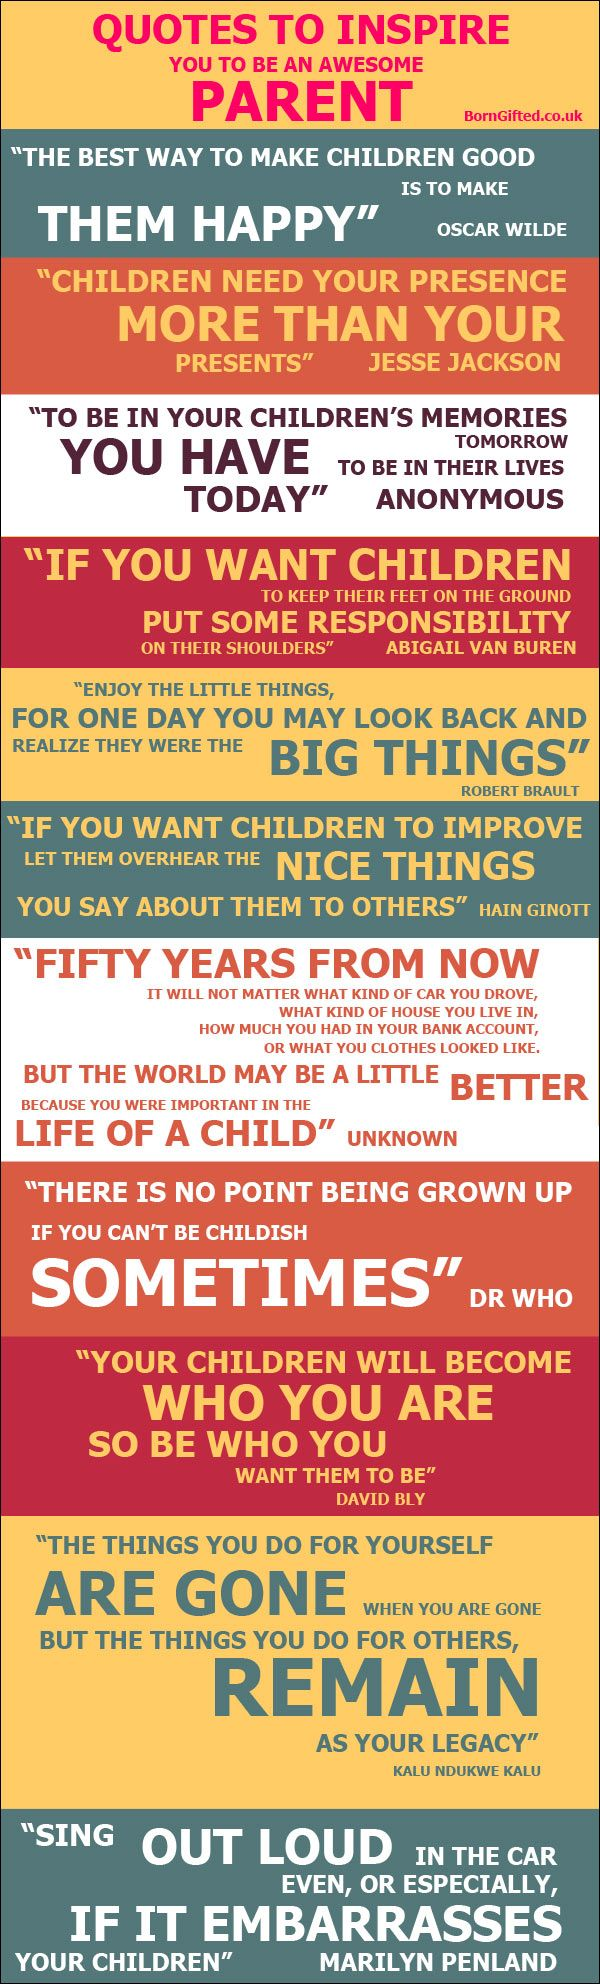 Inspirational Parenting Quotes. We may not all be biological parents, but surely we will have an influence in the lives of the young. It takes a village to raise a child.